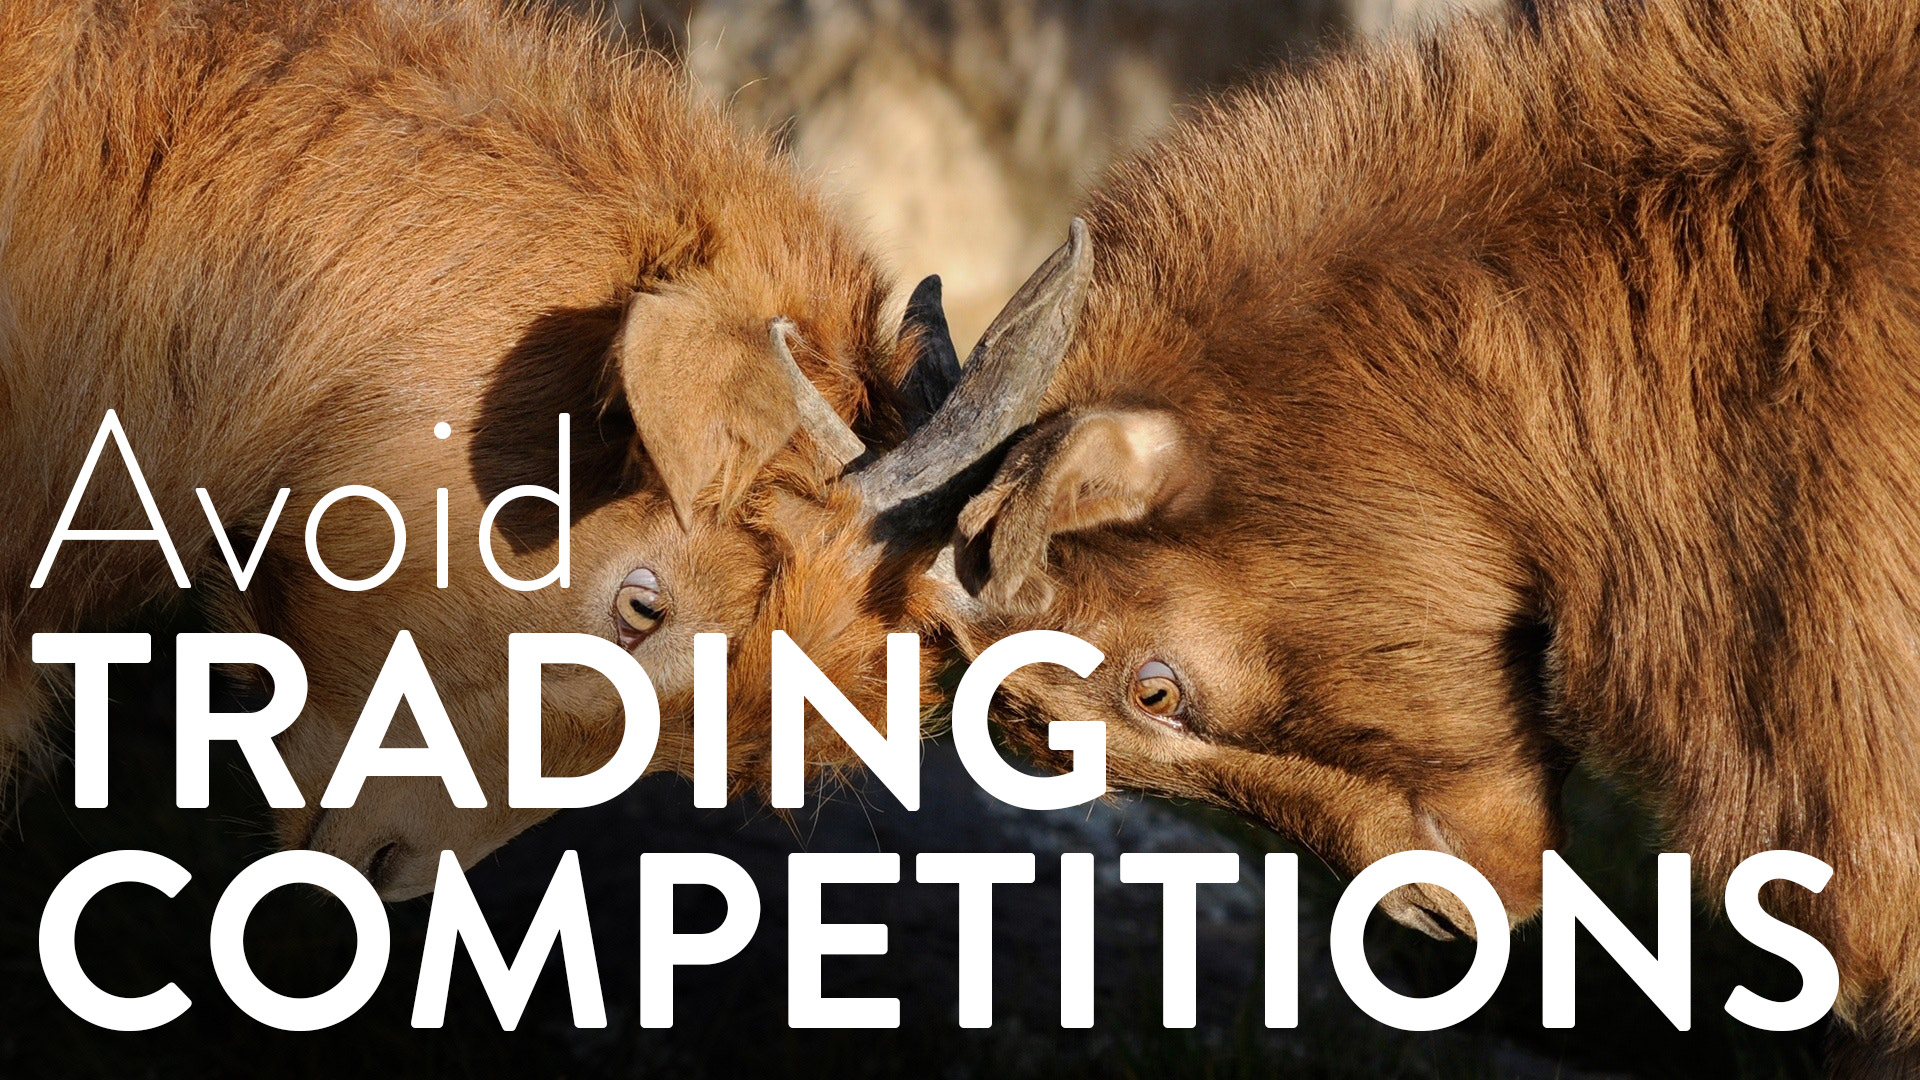 Avoid Trading Competitions